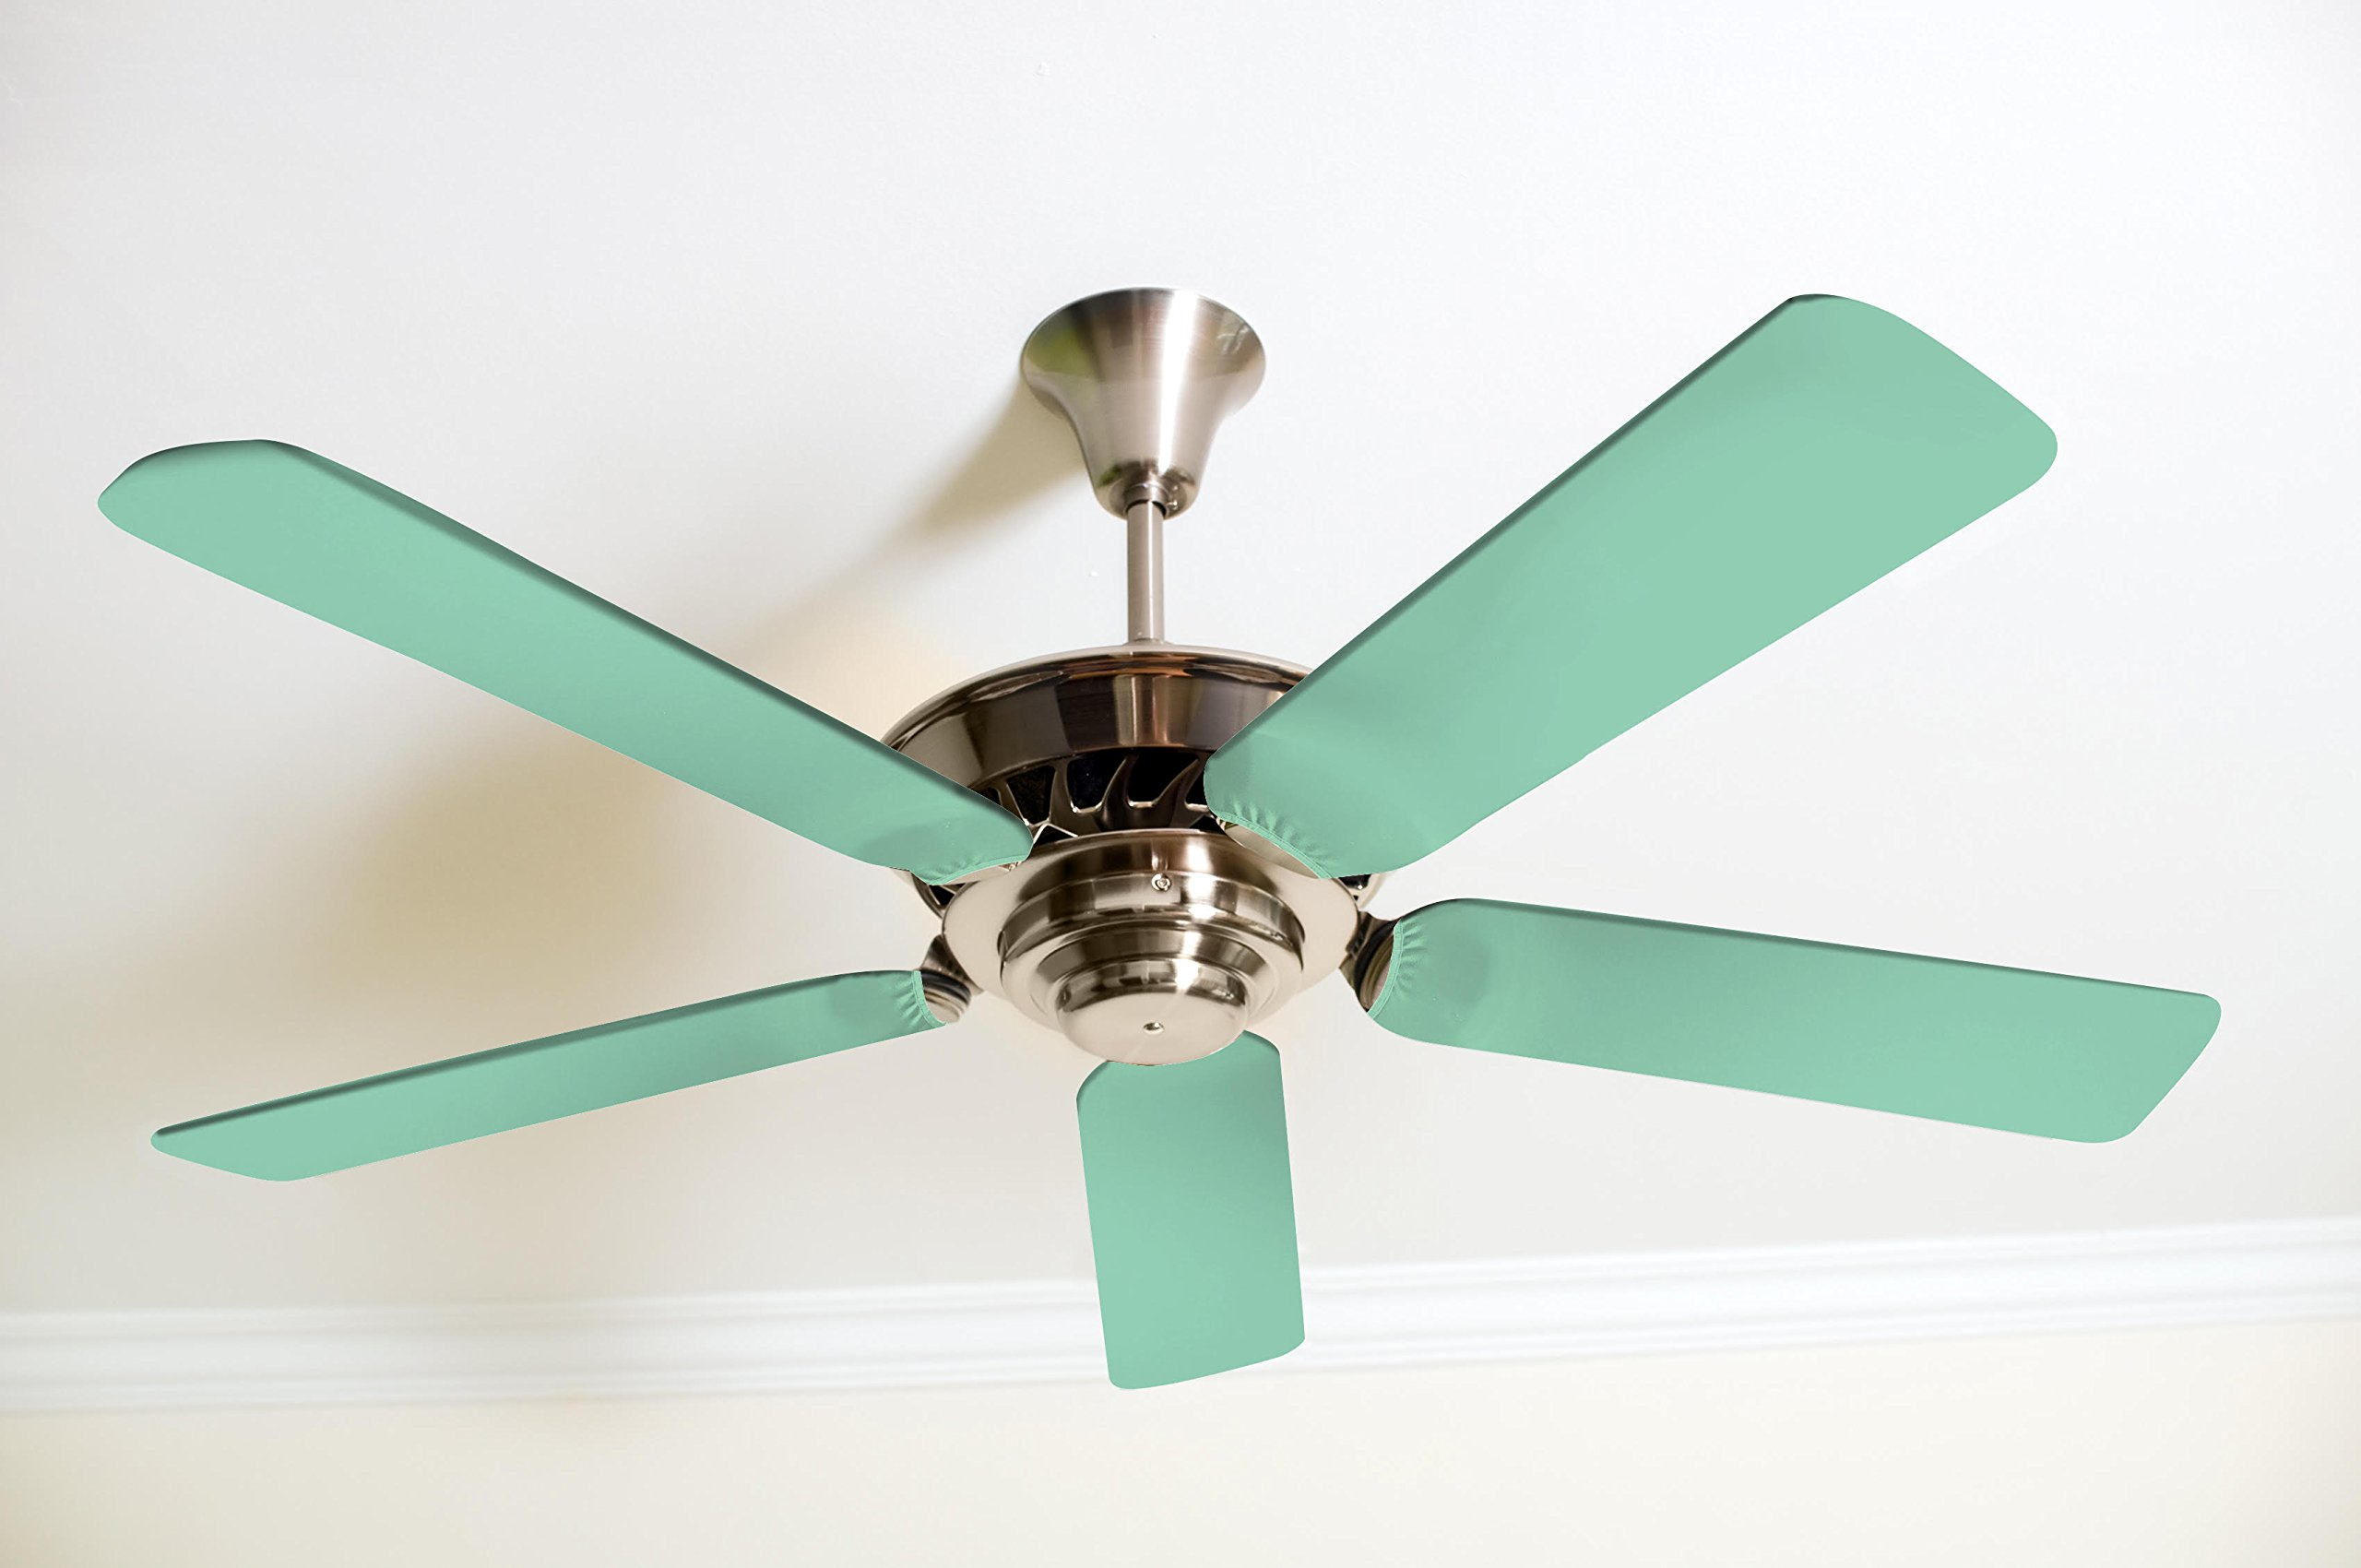 Fancy Blade Ceiling Fan Accessories Blade Cover Decoration, Mint Green